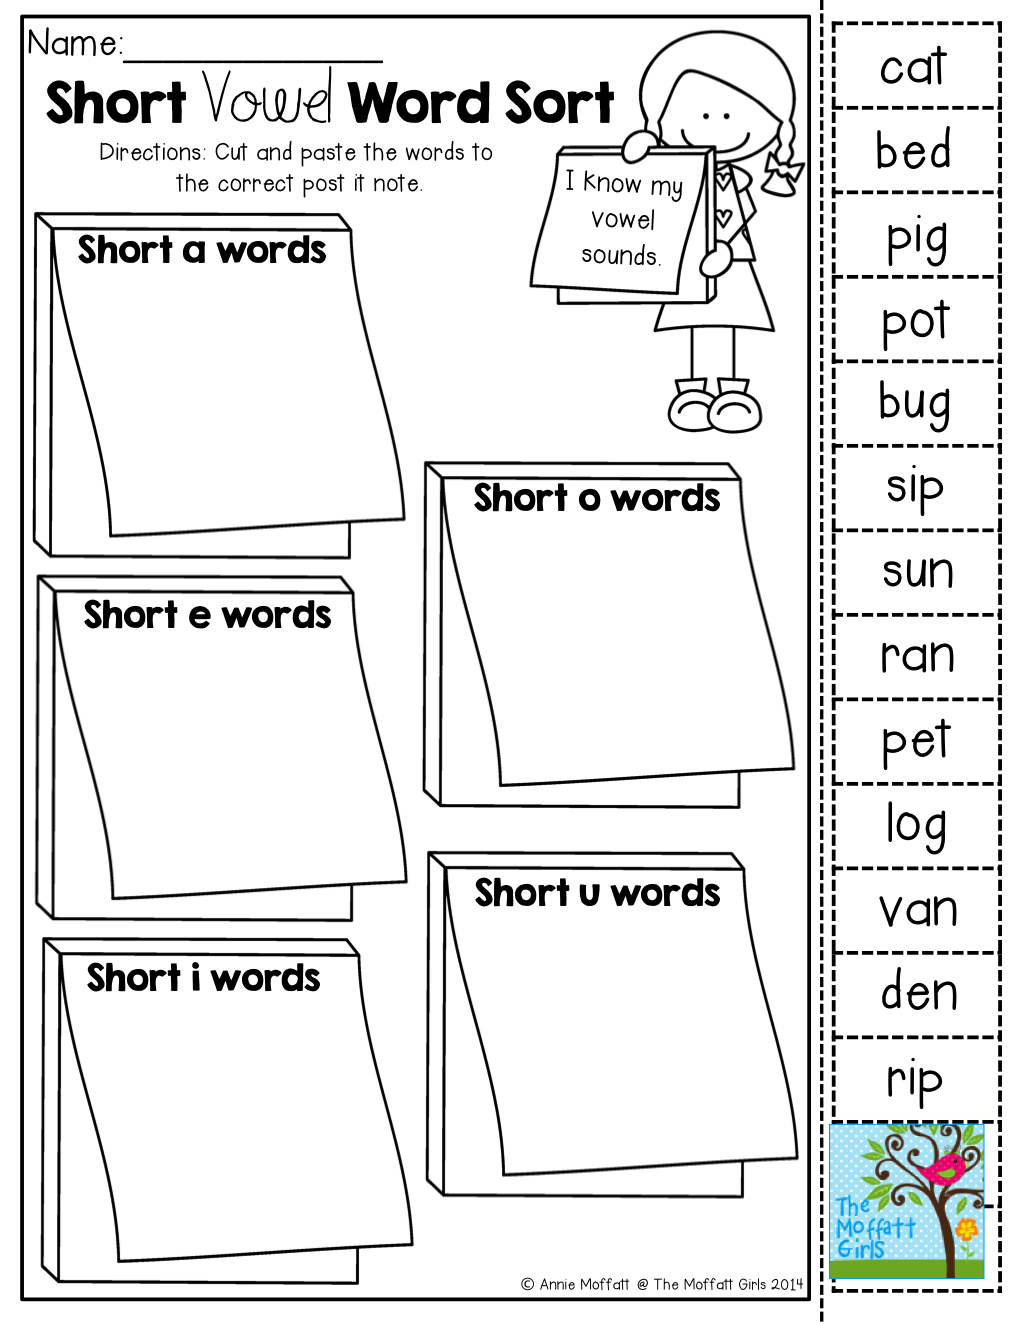 worksheet Short Vowel Sound Worksheets short vowel word sort cut and paste tons of back to school printables